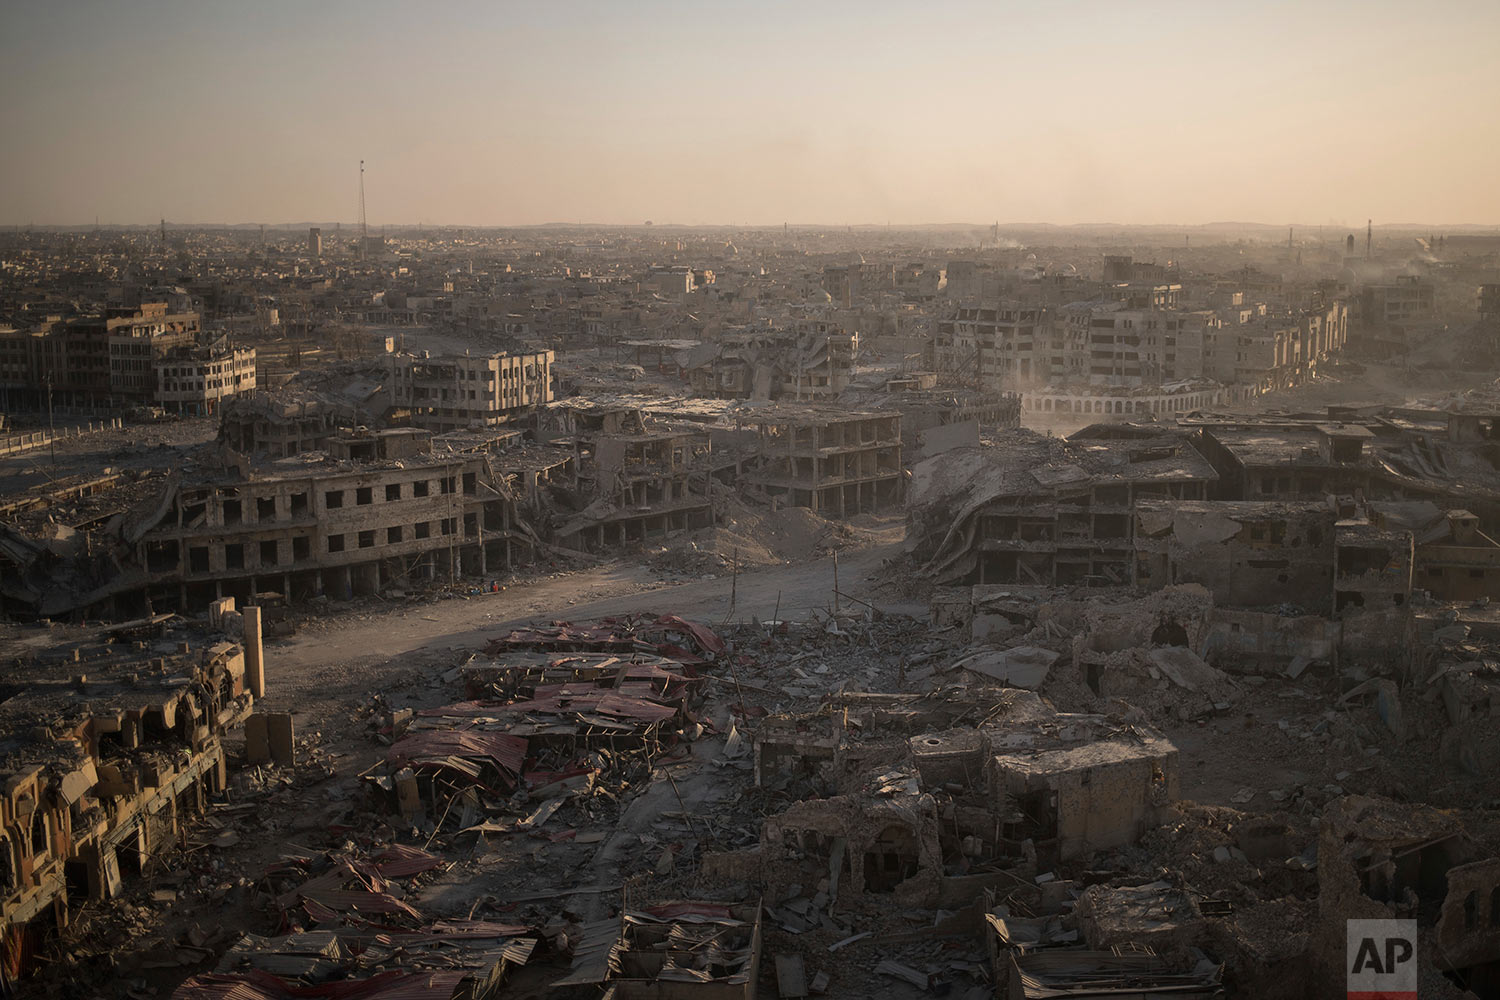 In this July 11, 2017 photo, damaged buildings are lit by the setting sun in the west side of Mosul, Iraq. (AP Photo/Felipe Dana)